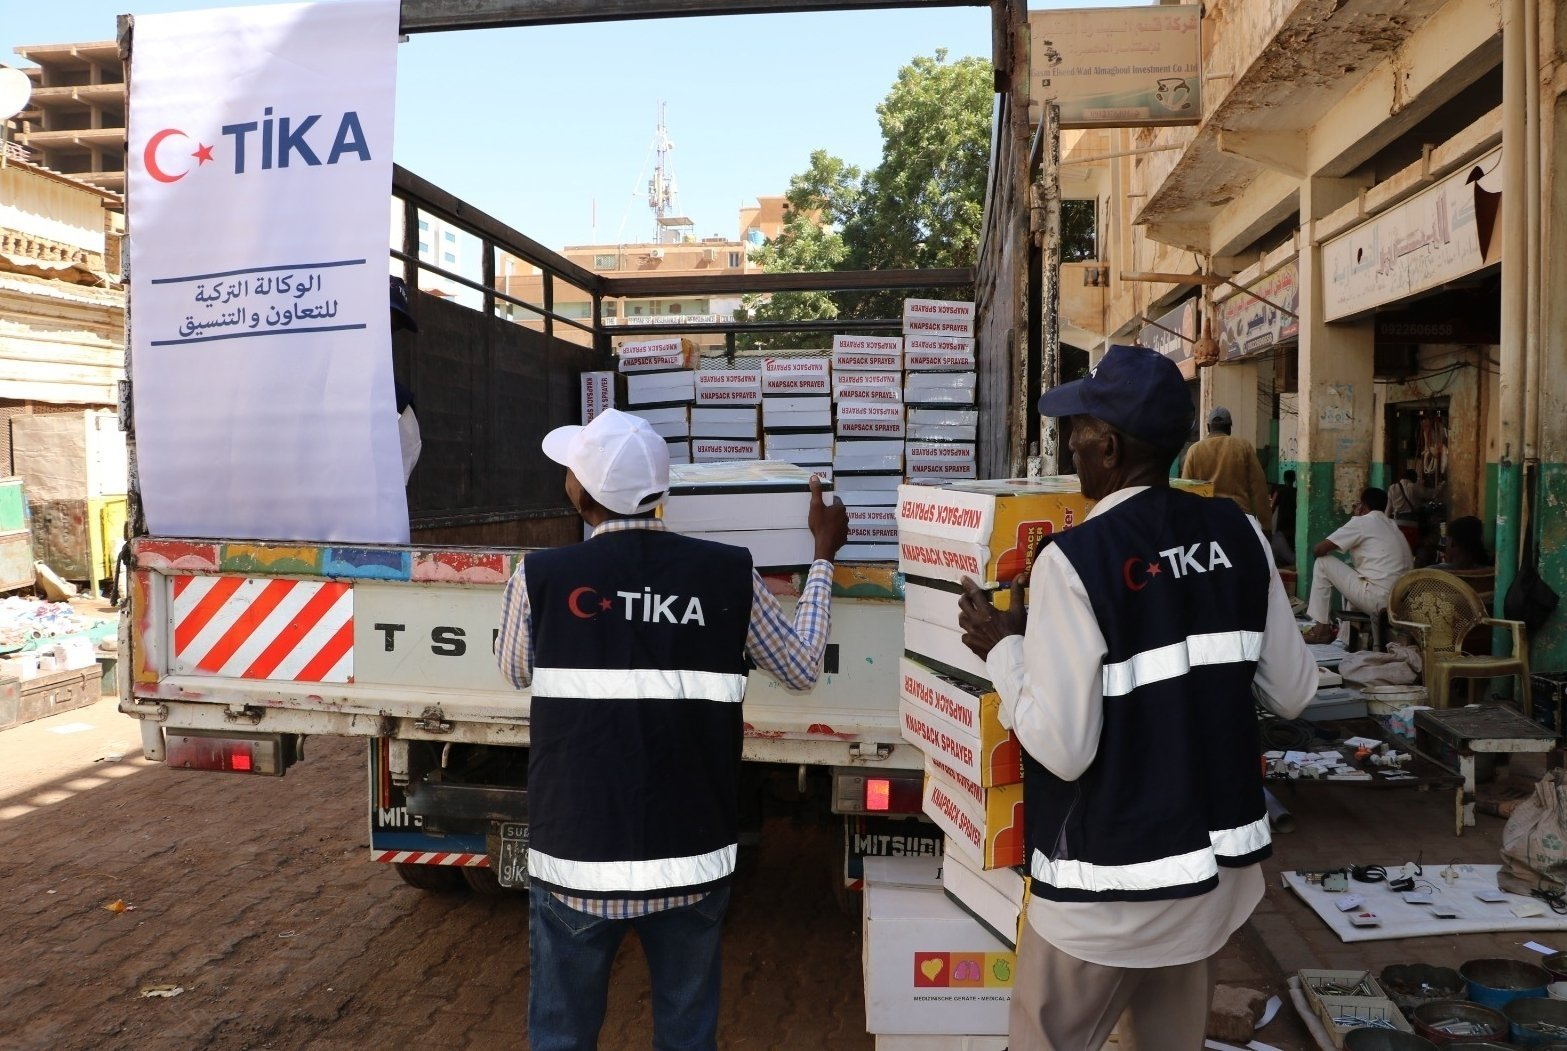 Turkish Cooperation and Coordination Agency (TIKA) volunteers unload a truck filled with personal protective equipment (PPE) and medical supplies, in Khartoum, Sudan, Dec. 13, 2020. (AA Photo)